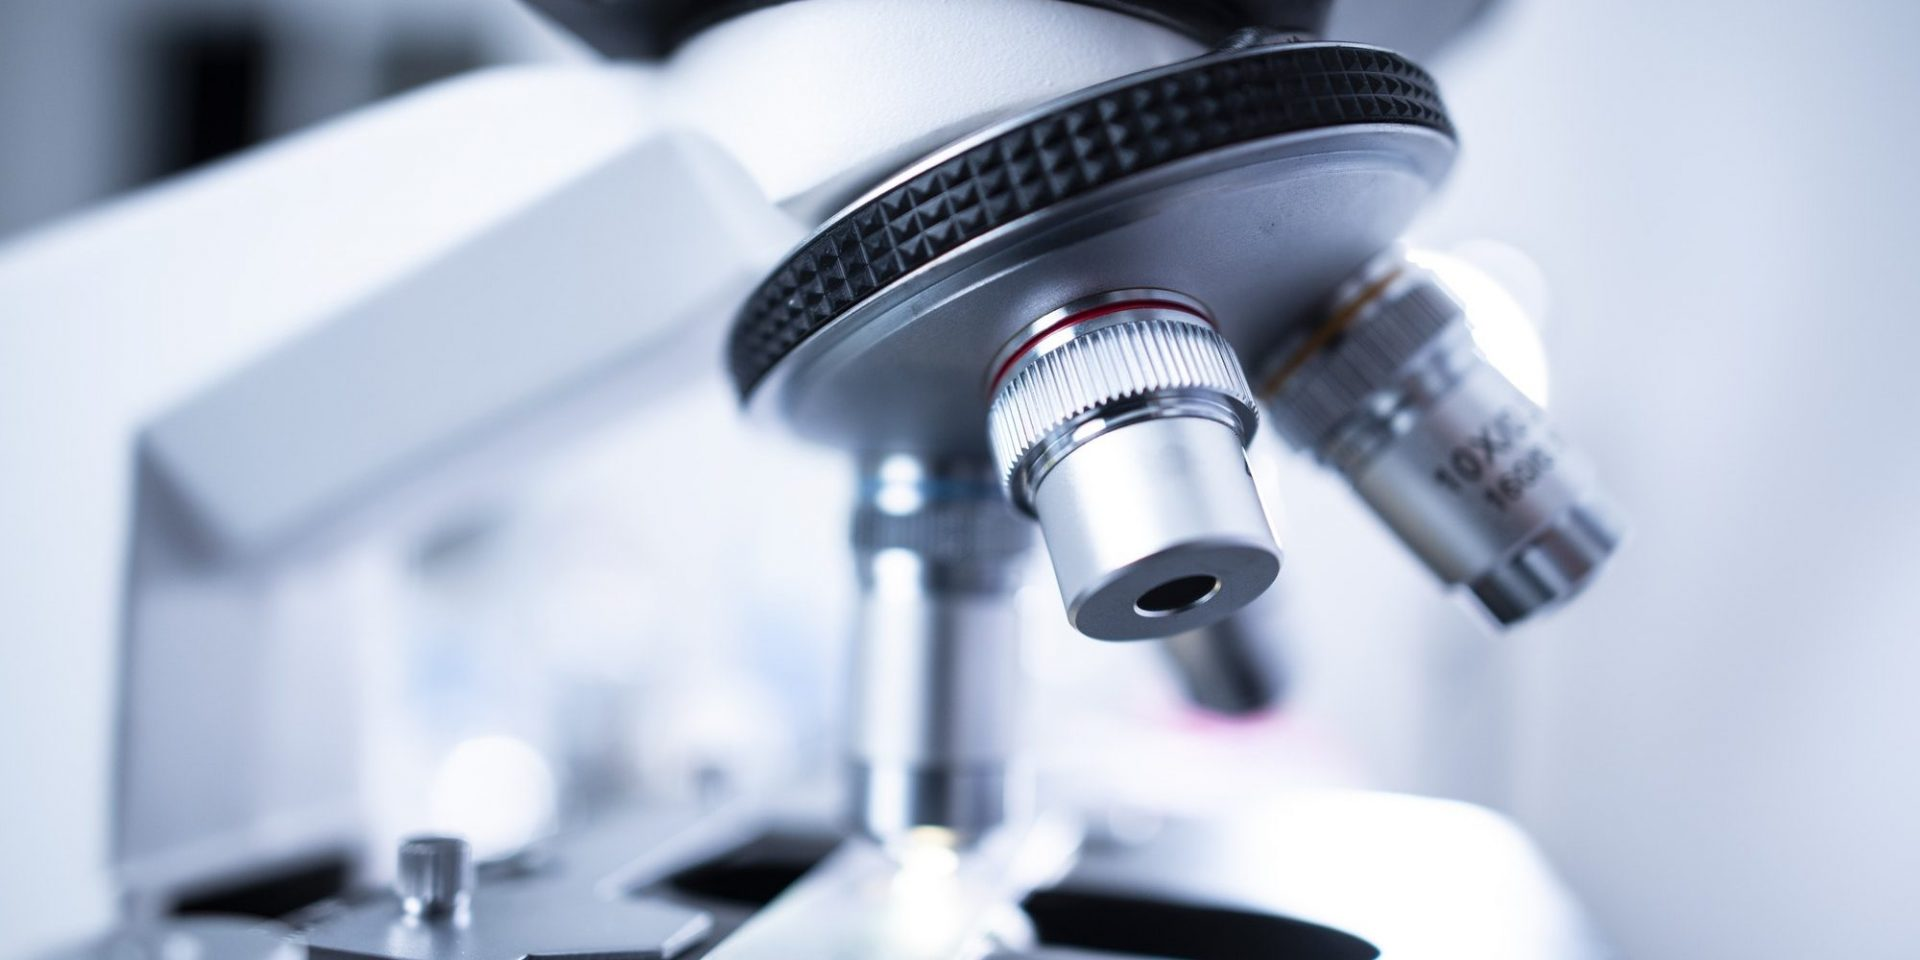 Microscopes for researchers in medical laboratories